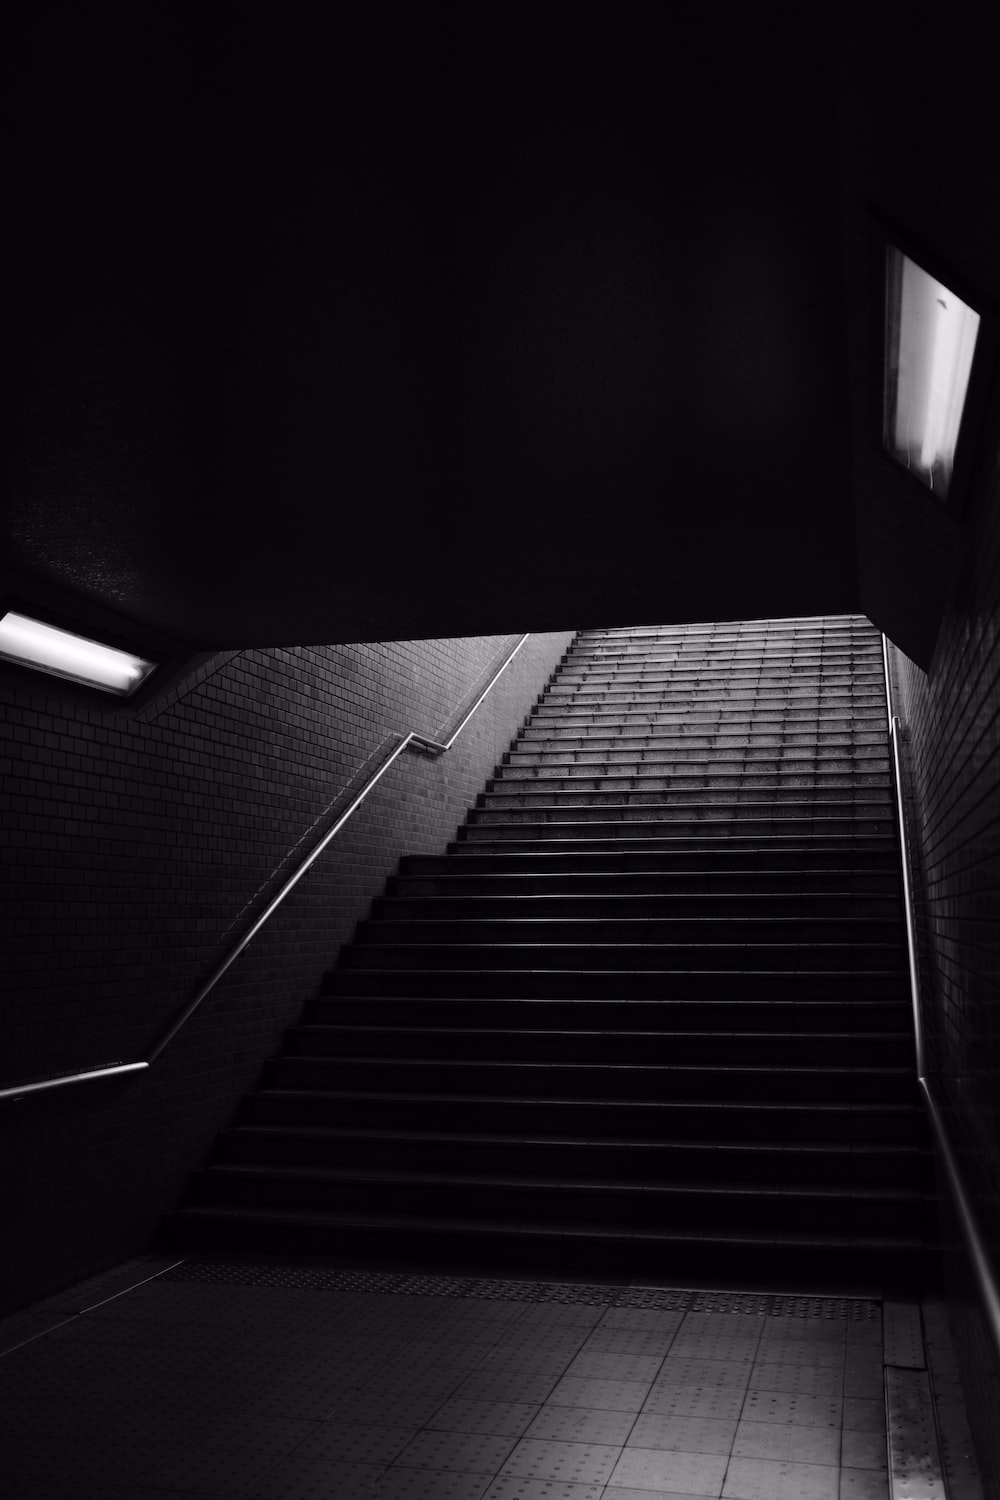 grayscale photography of stair